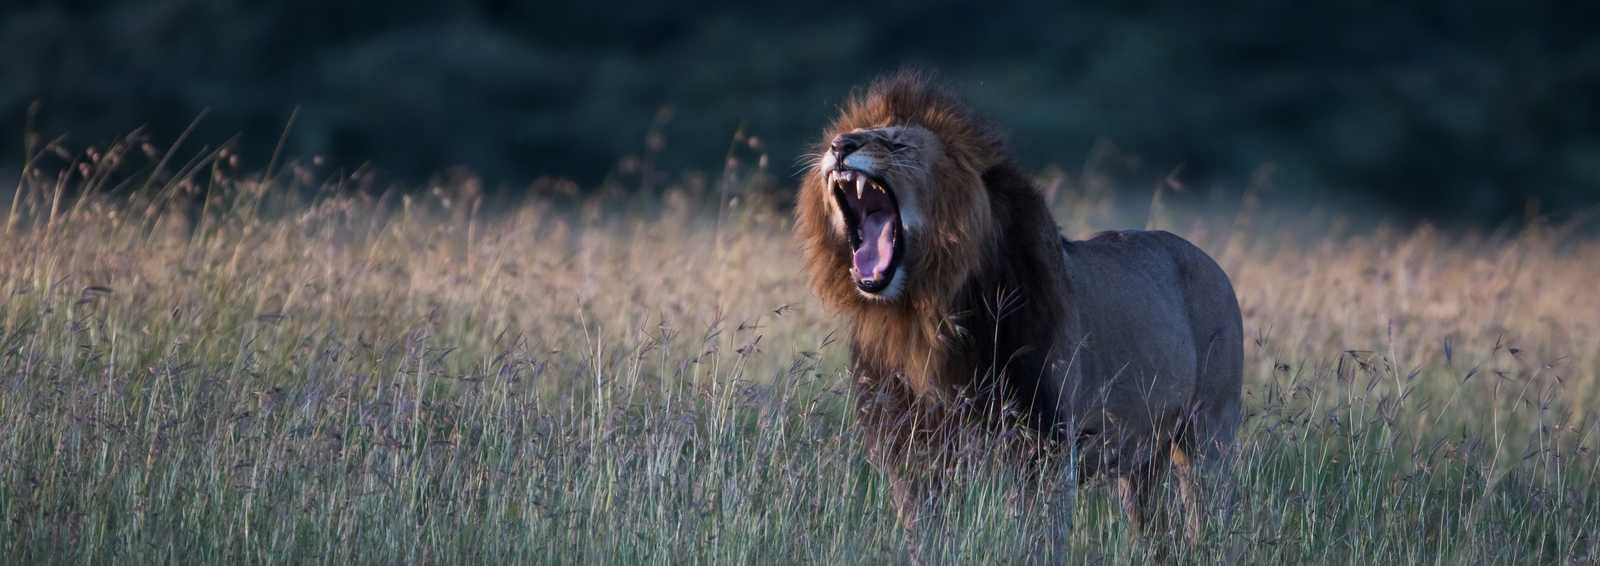 Call of the Wild - Lion, Kenya